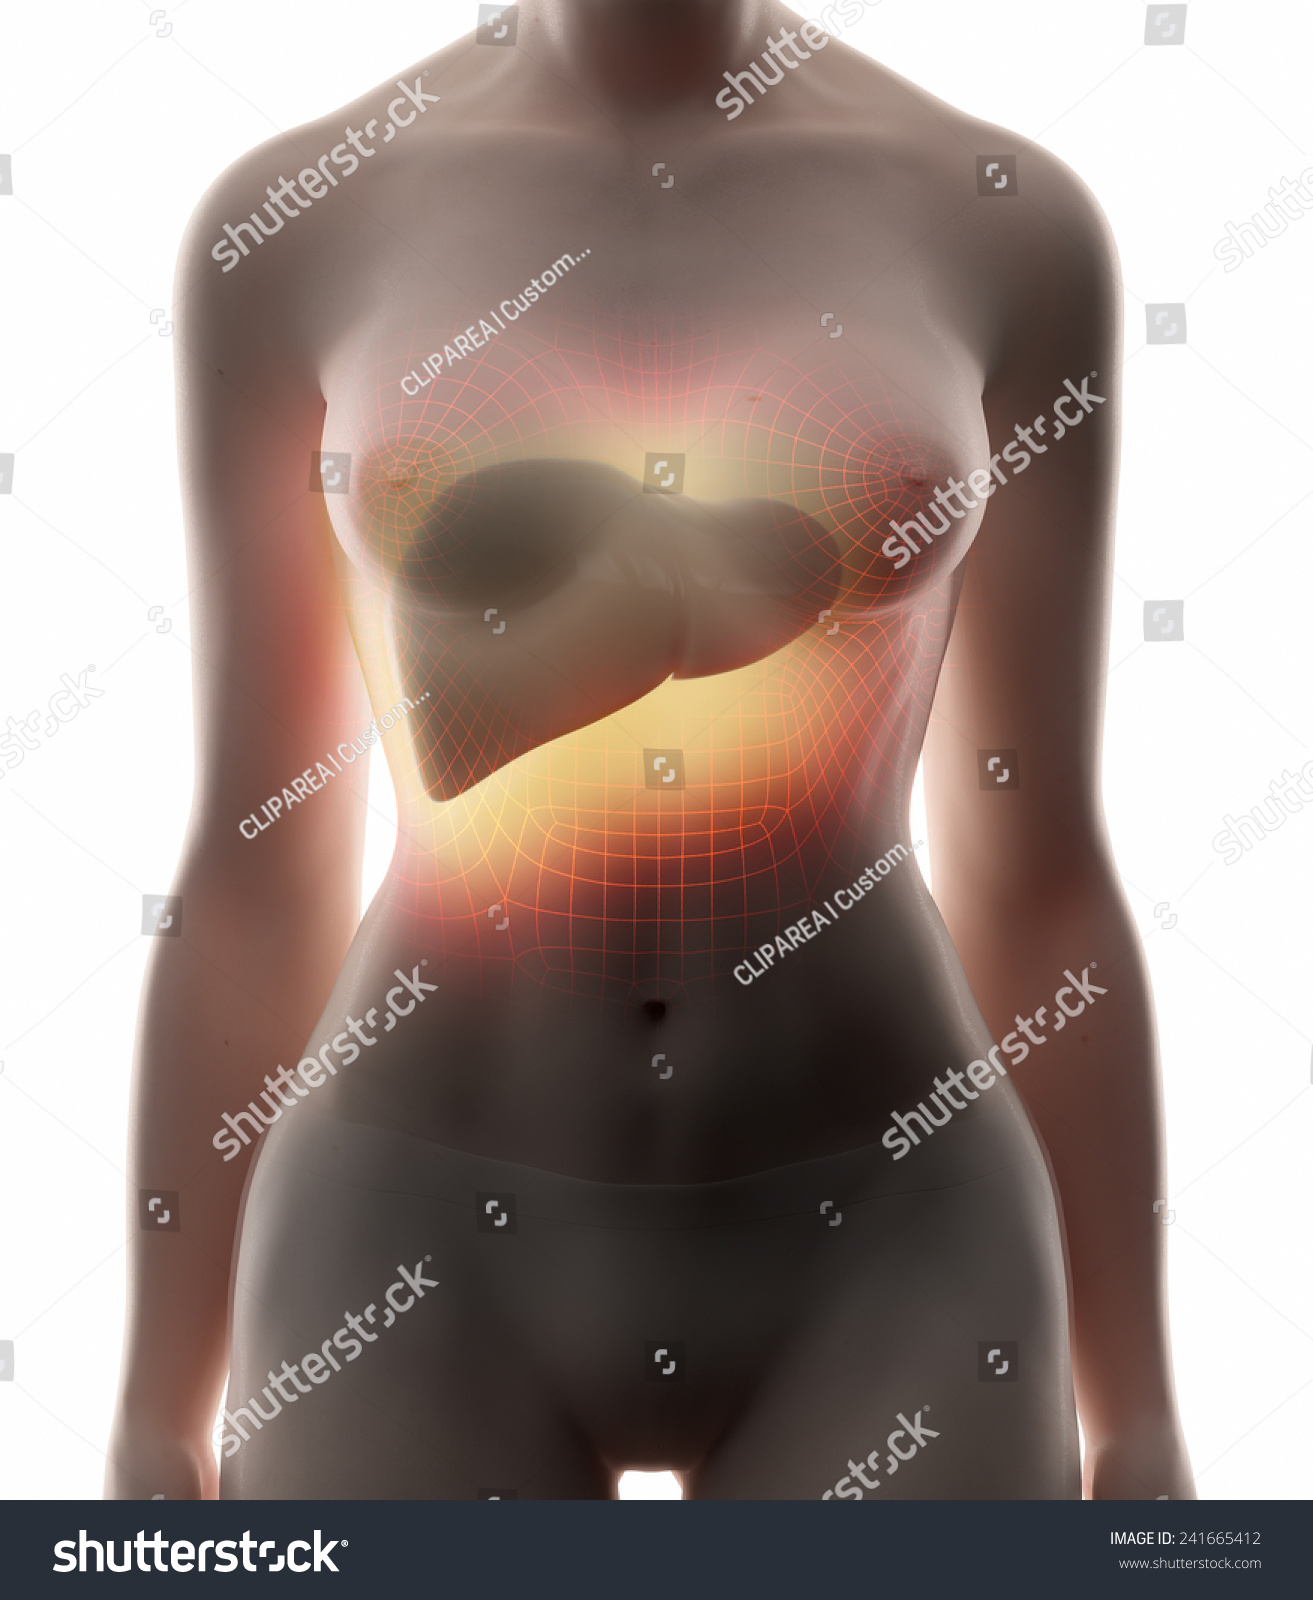 Liver Real View Female Anatomy Concept Stock Illustration 241665412 ...